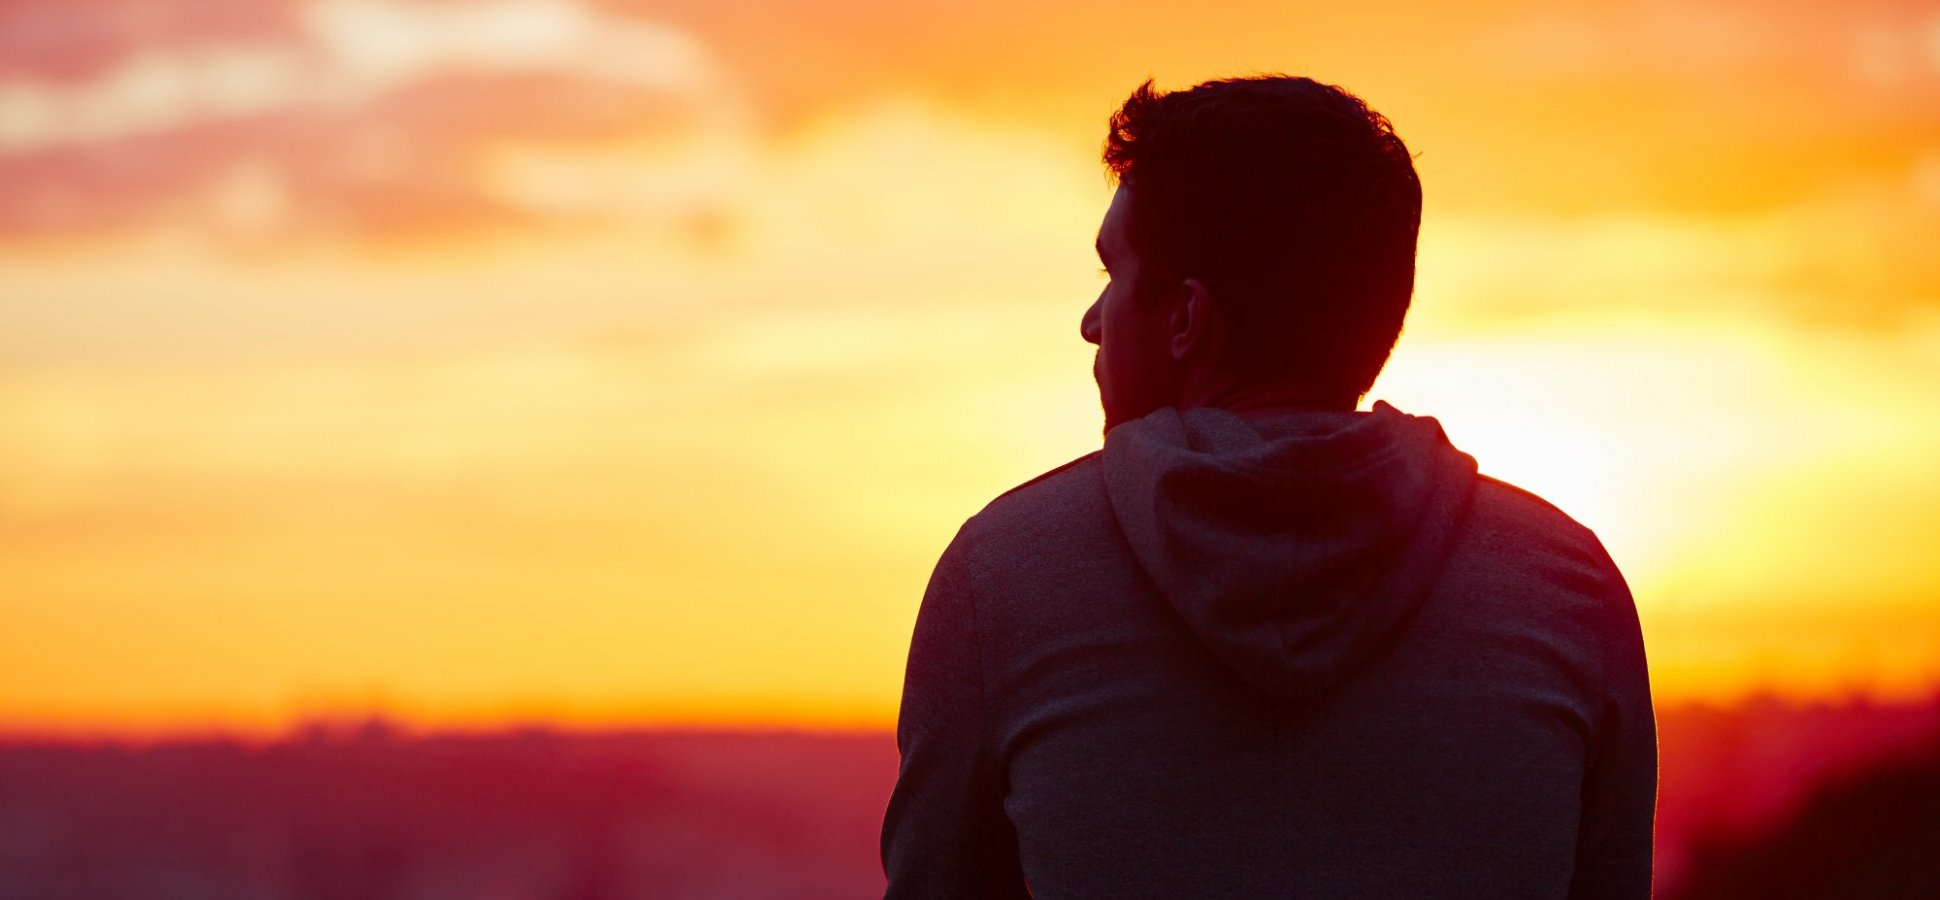 The 7 Most Important Life Lessons to Learn While You're Still Young